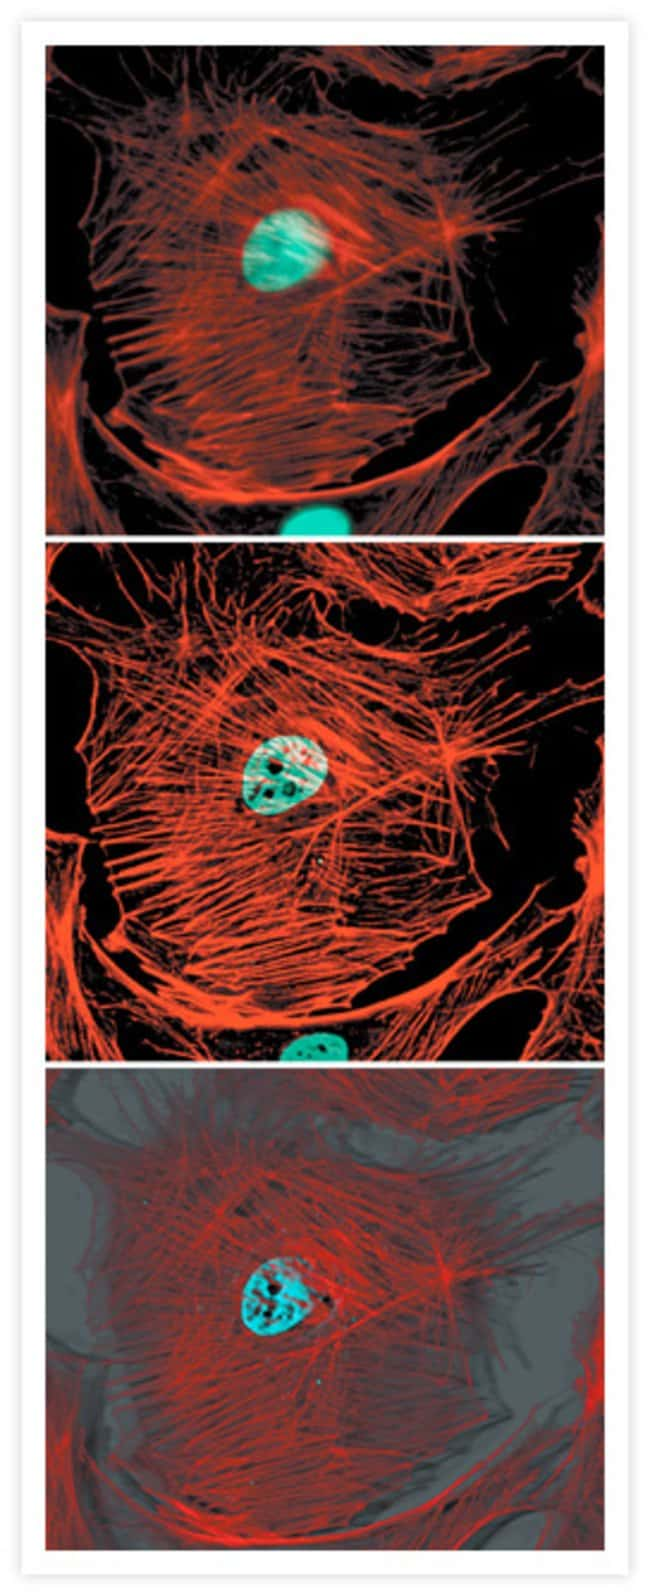 Fixed, permeabilized bovine pulmonary artery endothelial cells labeled with Texas Red®-X phalloidin.